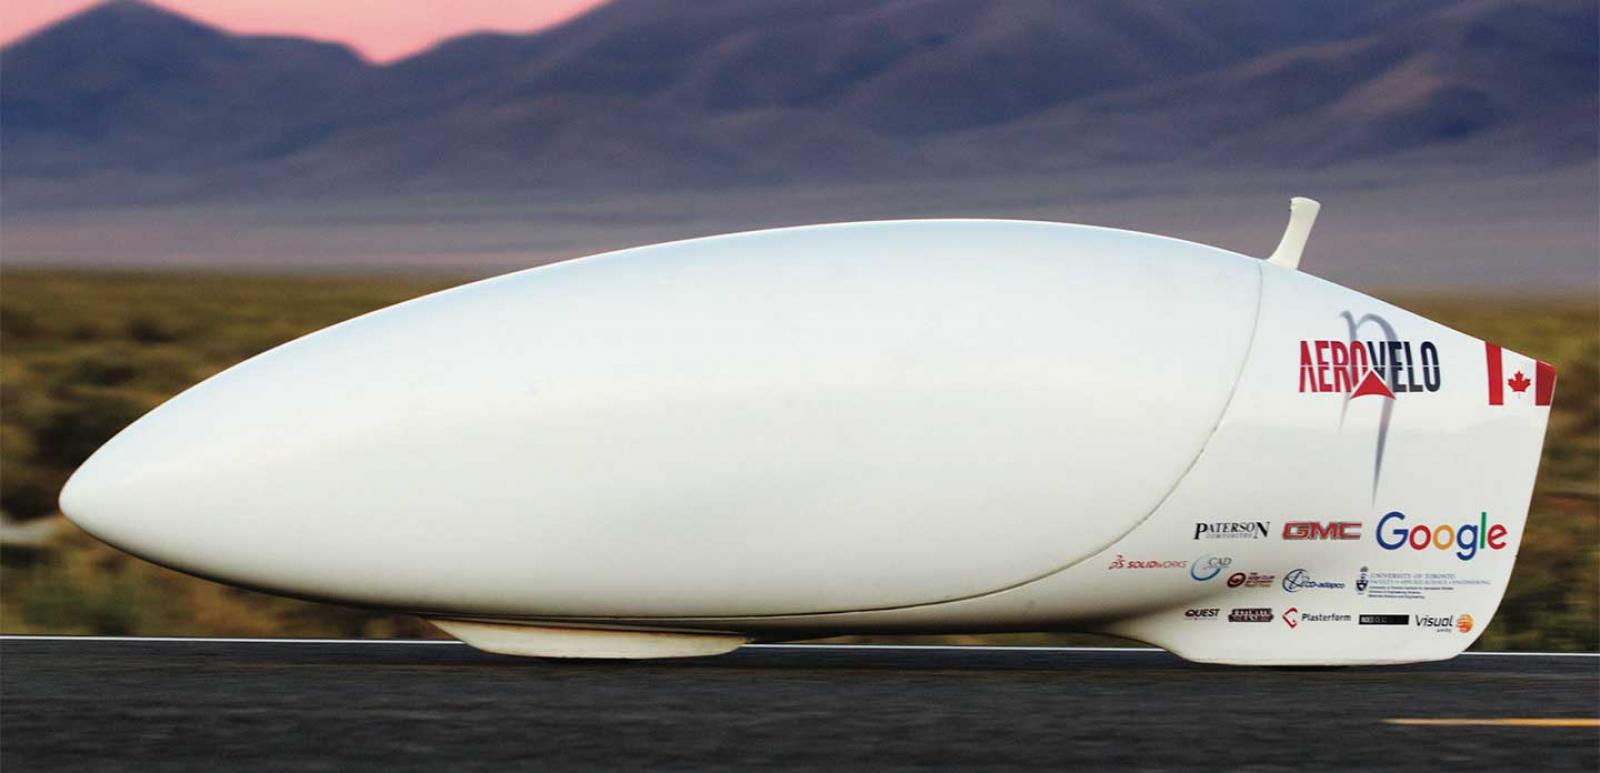 Aerovelo Solidworks Case Study